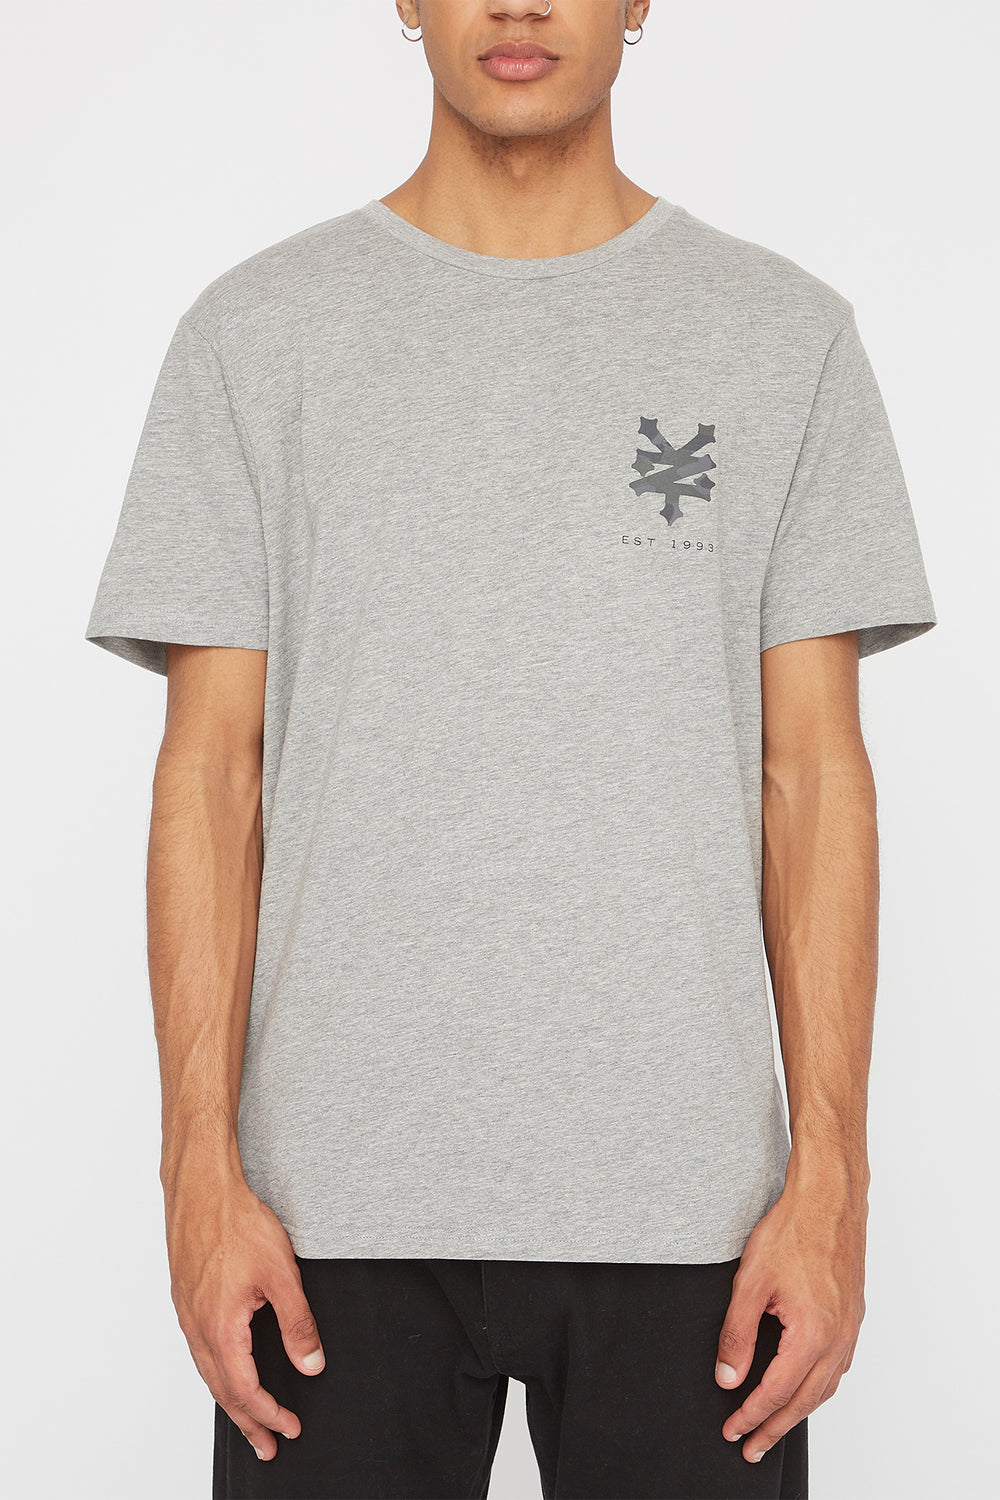 T-Shirt Logo Camouflage Zoo York Homme Gris